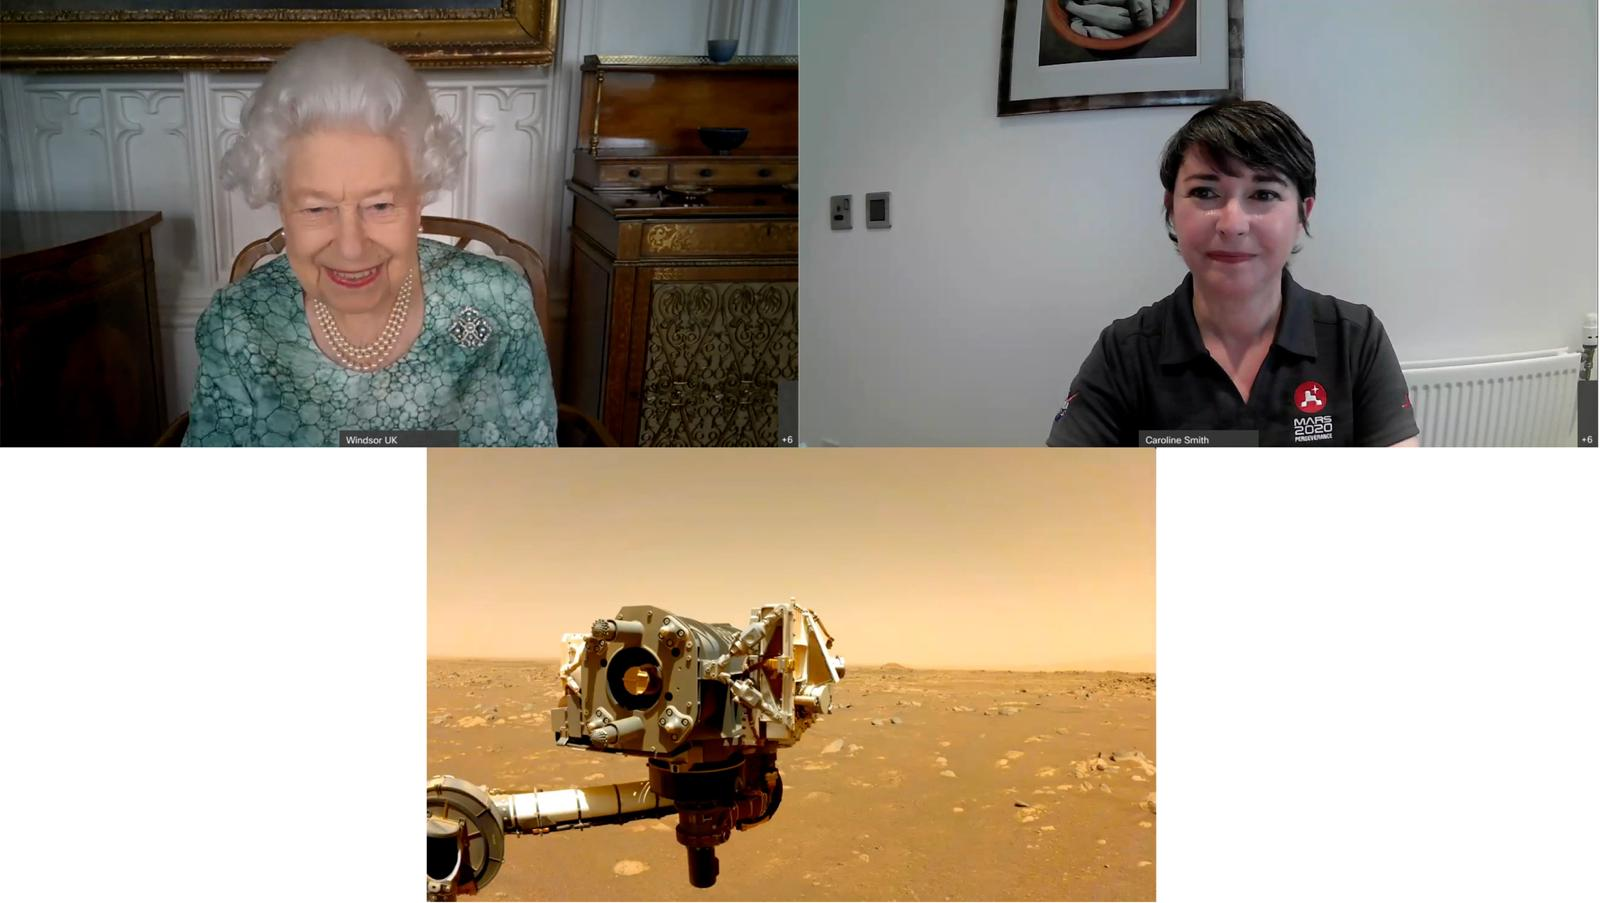 - 9843e34d a502 4942 bcea fdd07355818d - Queen reveals fascination with space exploits as she marks science week